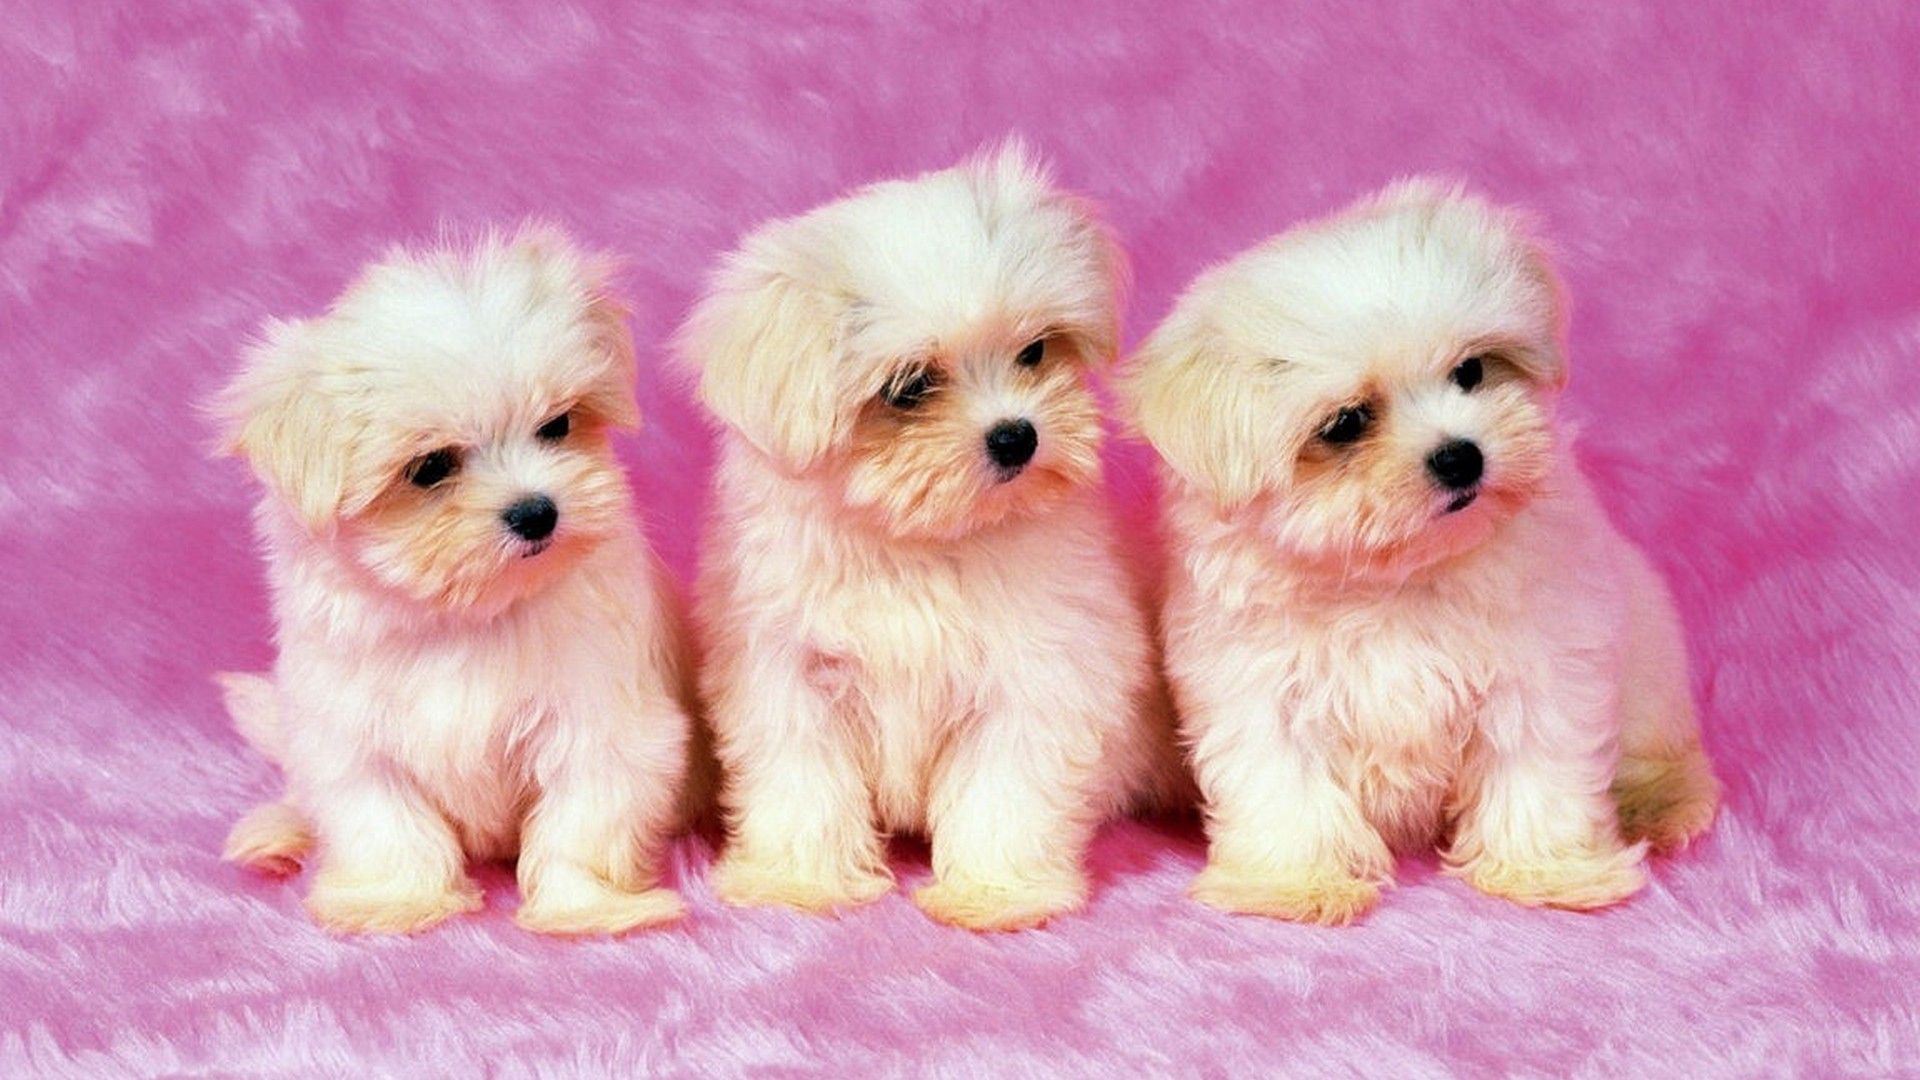 Cute Puppies Background Wallpaper Hd 2021 Live Wallpaper Hd Cute Dog Wallpaper Dog Wallpaper Puppy Backgrounds